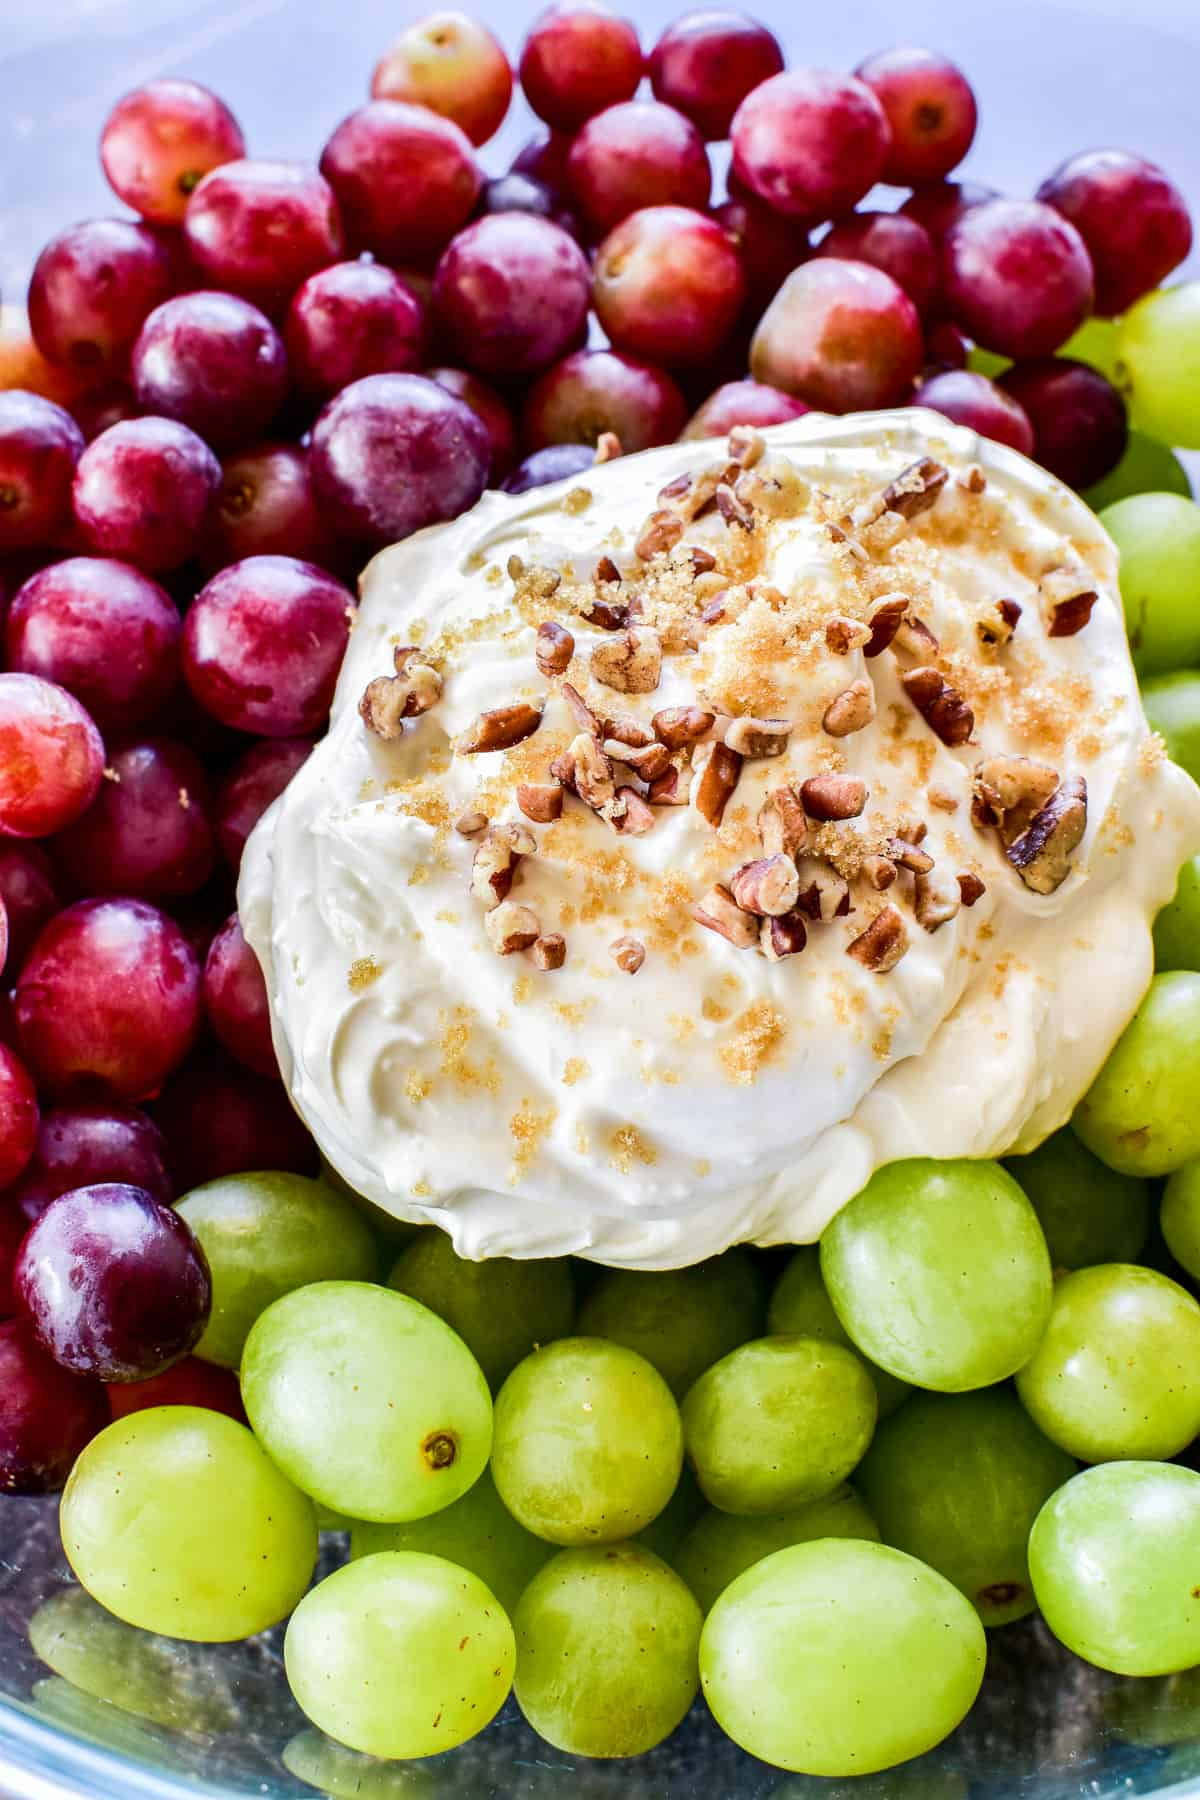 Close up of Grape Salad ingredients in mixing bowl